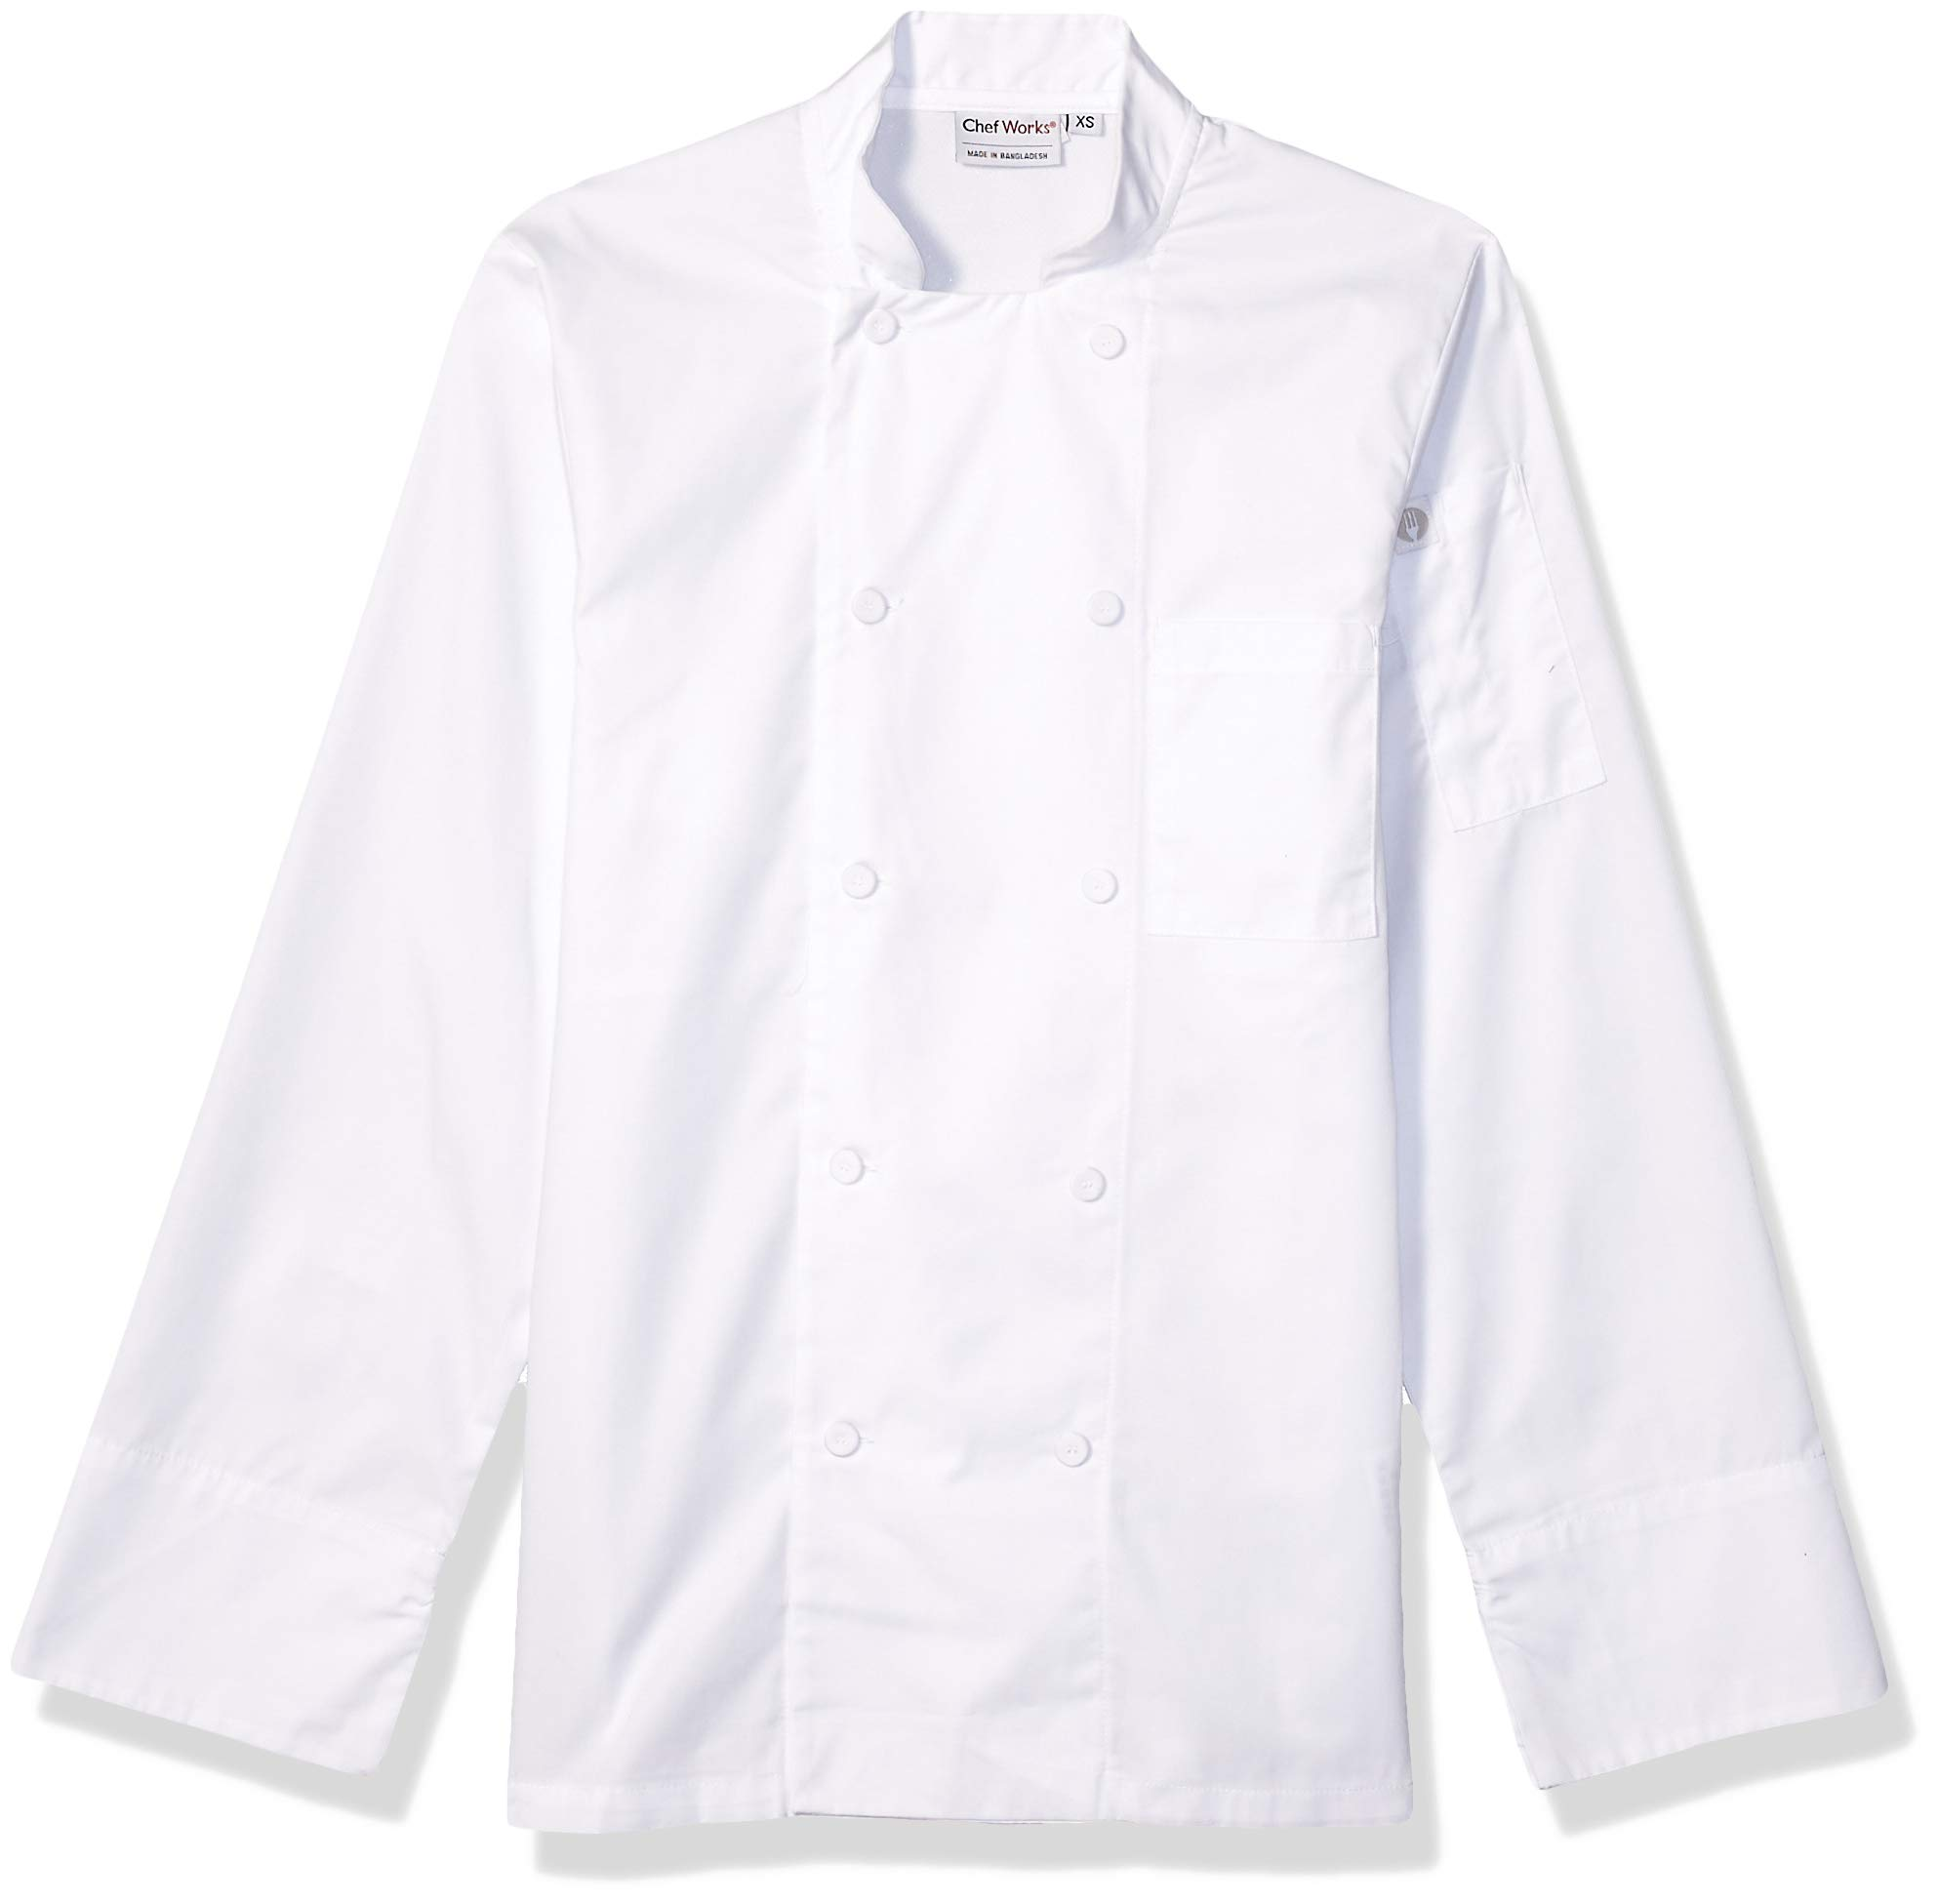 Chef Works Men's Calgary Cool Vent Chef Coat, White, Large by Chef Works